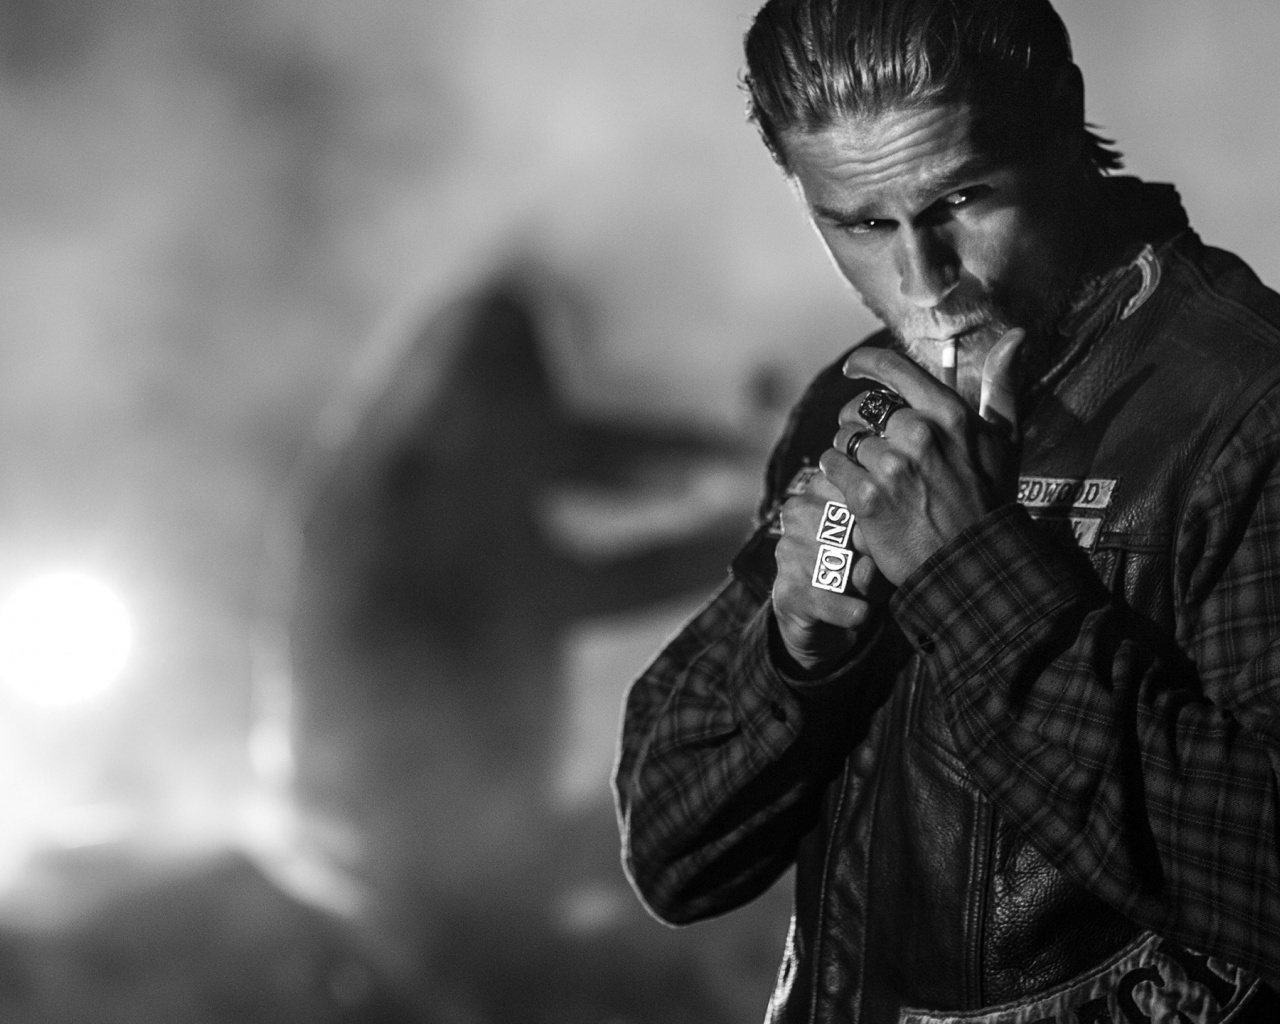 1280x1024 Sons of Anarchy Charlie Hunnam desktop PC and Mac wallpaper 1280x1024